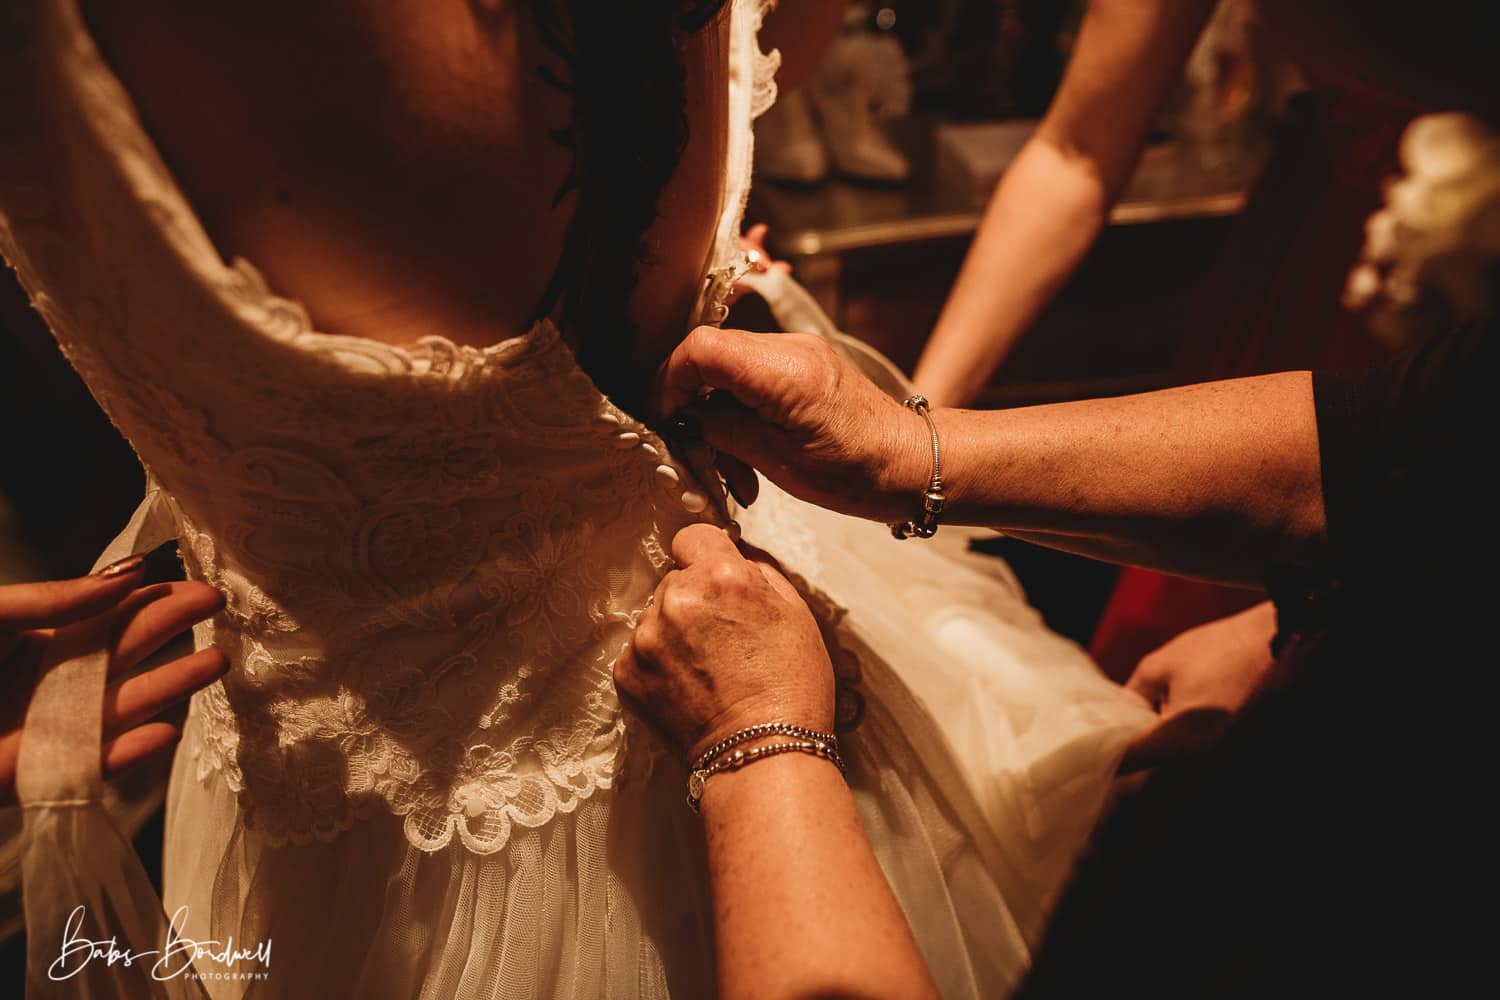 bride putting her dress on assisted by her mother and bridesmaid